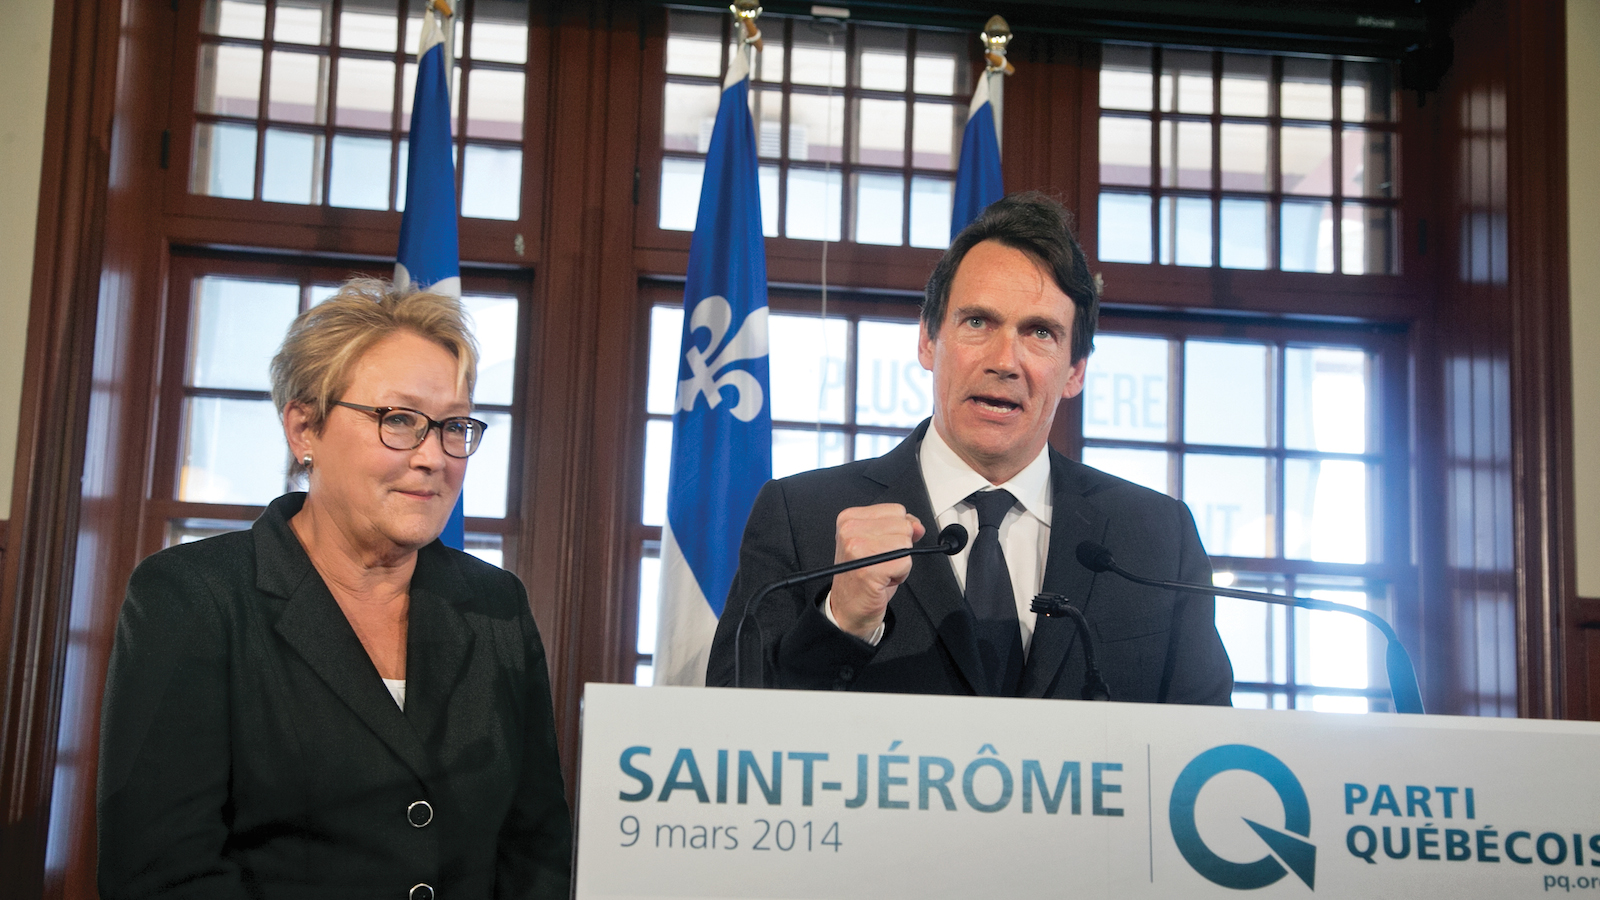 Pierre Karl Peladeau with Pauline Marois at a campaign event in March. (Christinne Muschi)